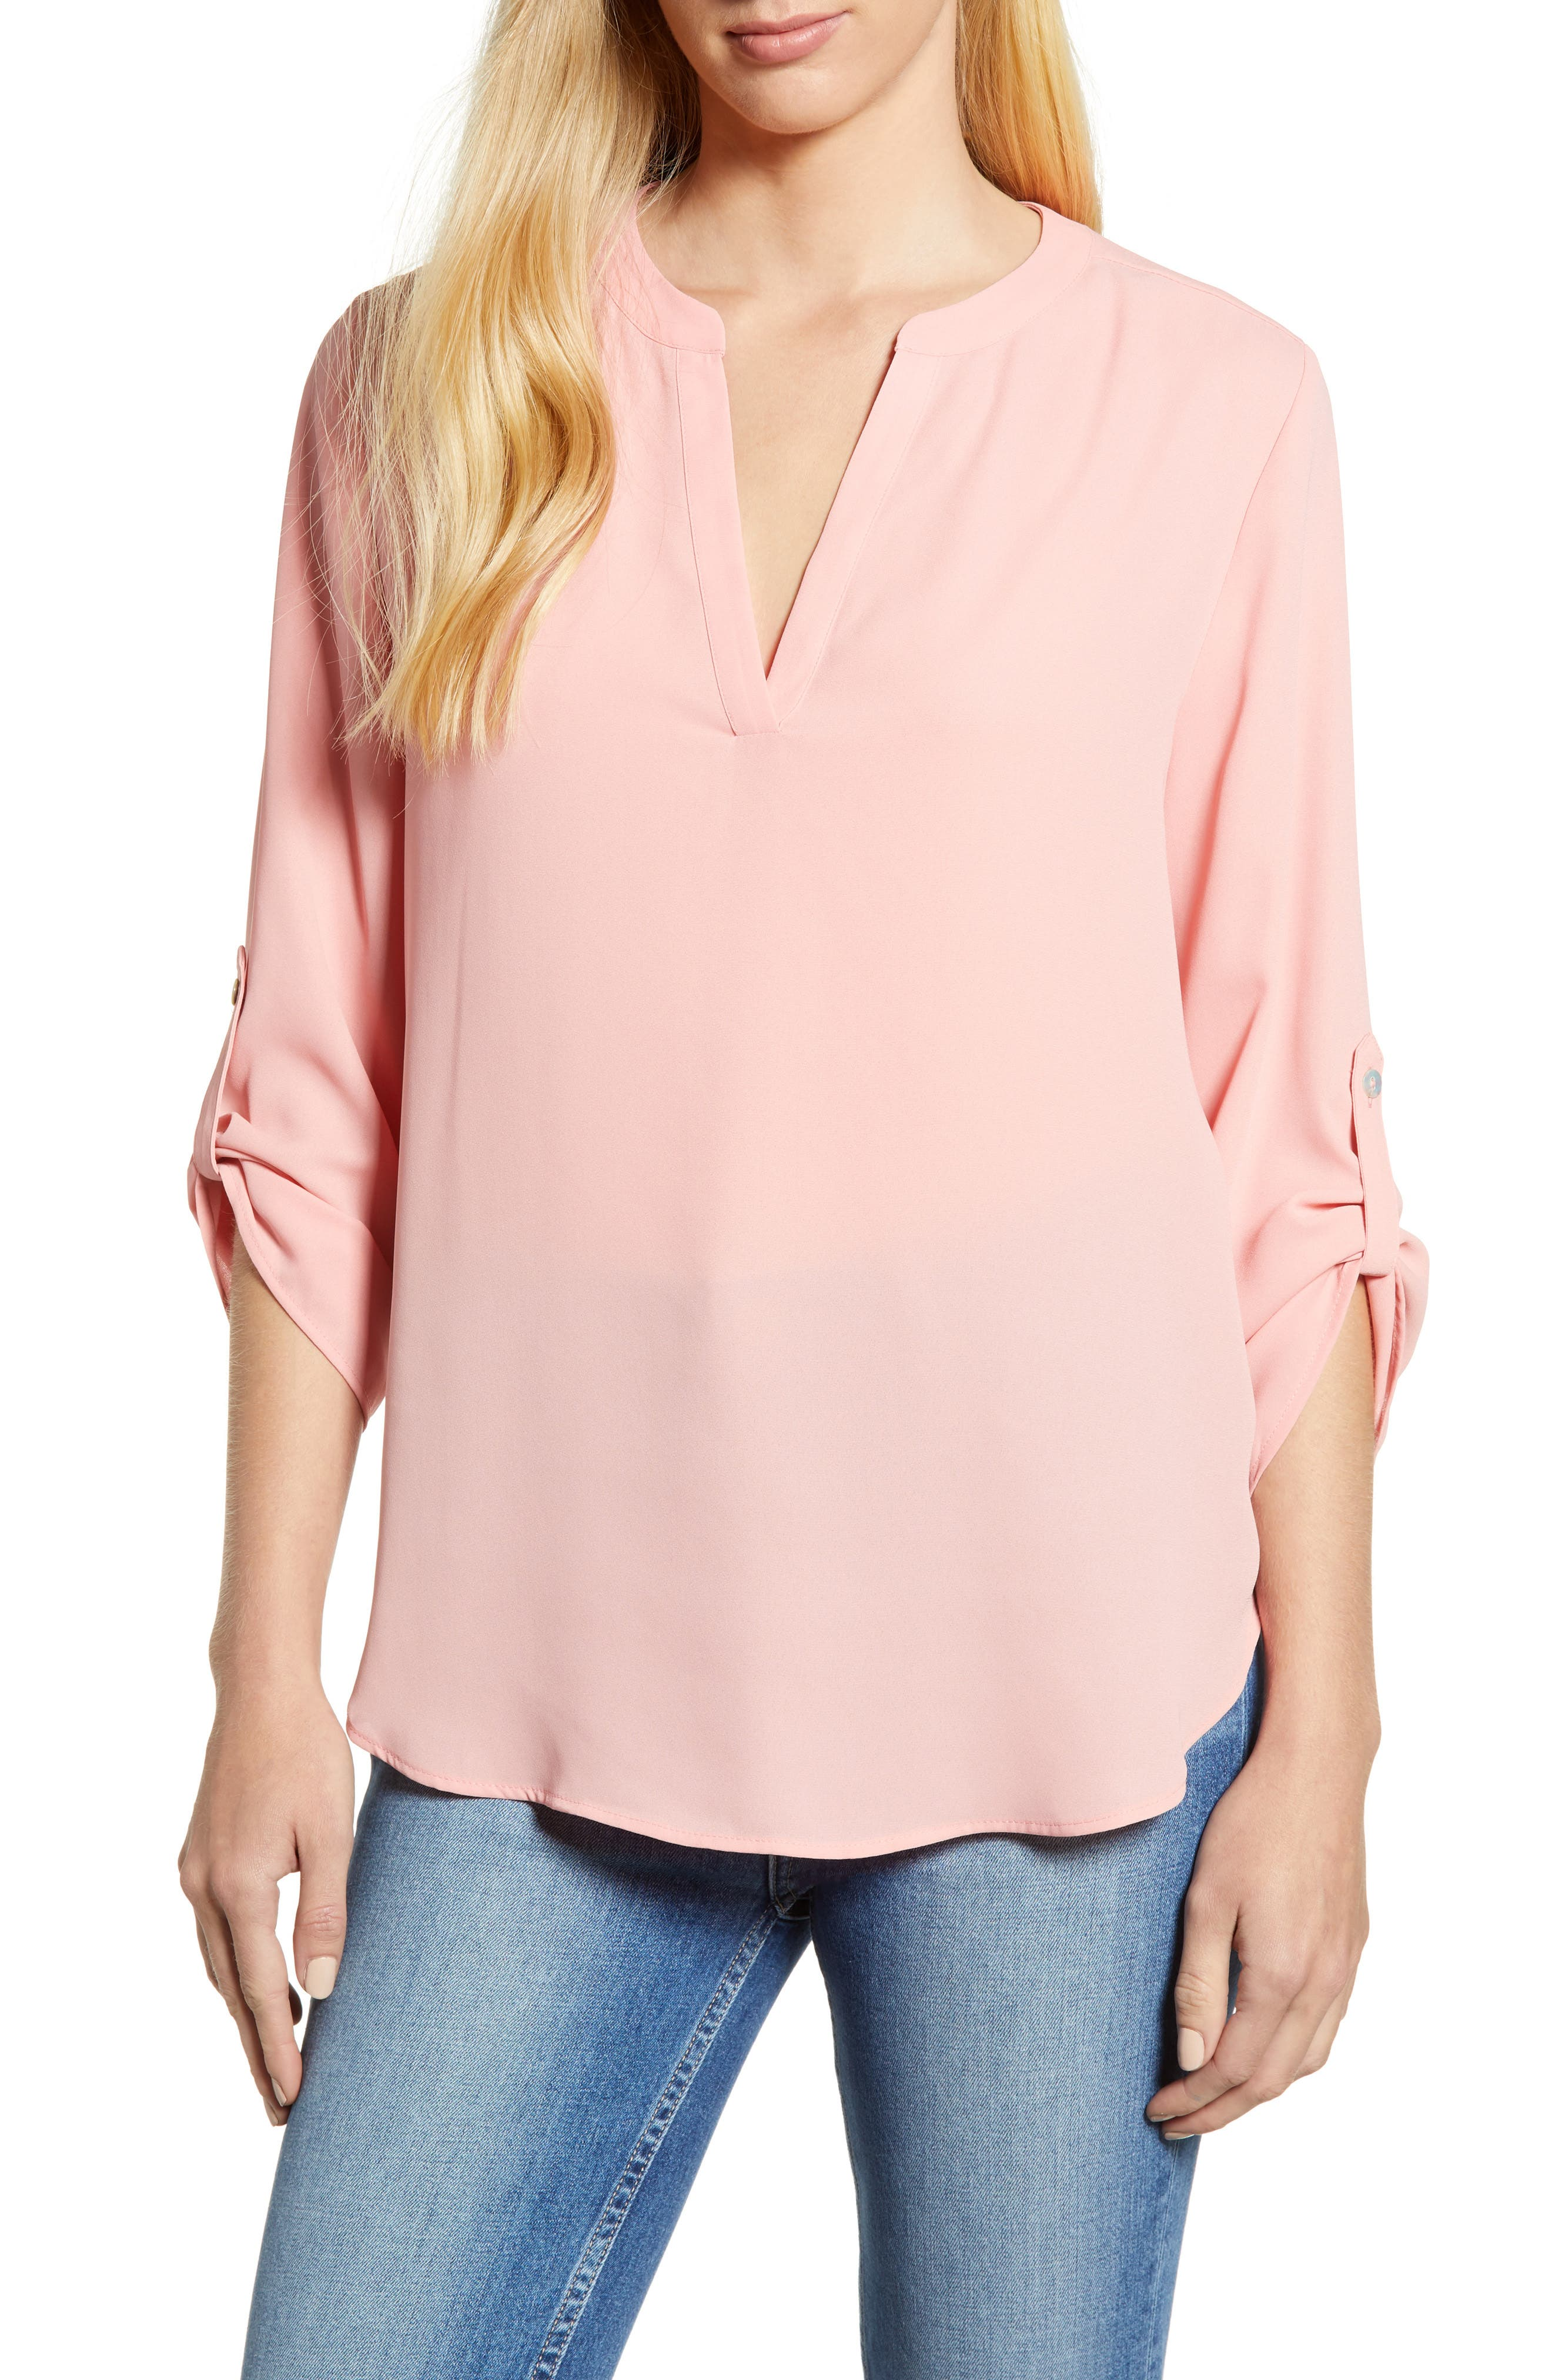 847a876883cb Women s Everleigh Tops